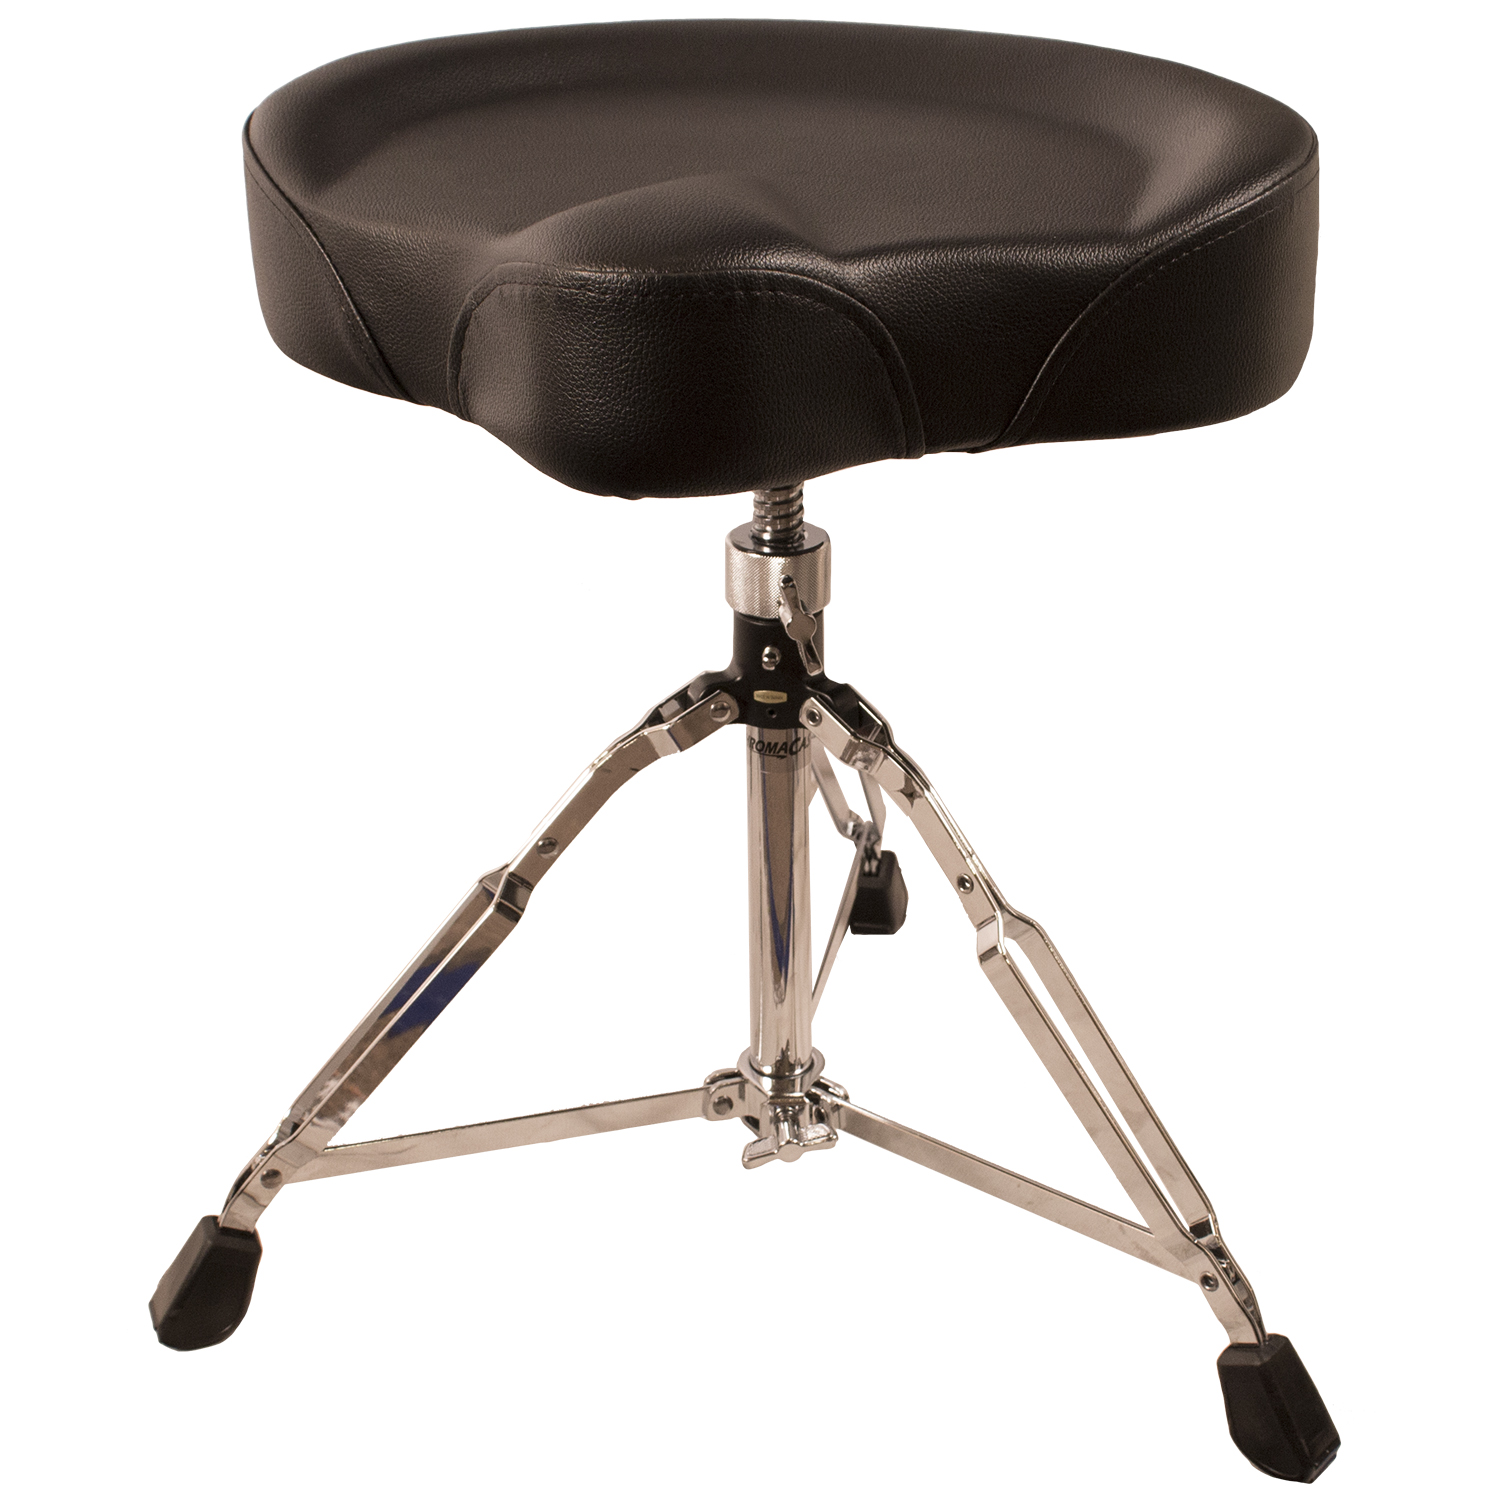 Pro Series Drum Throne